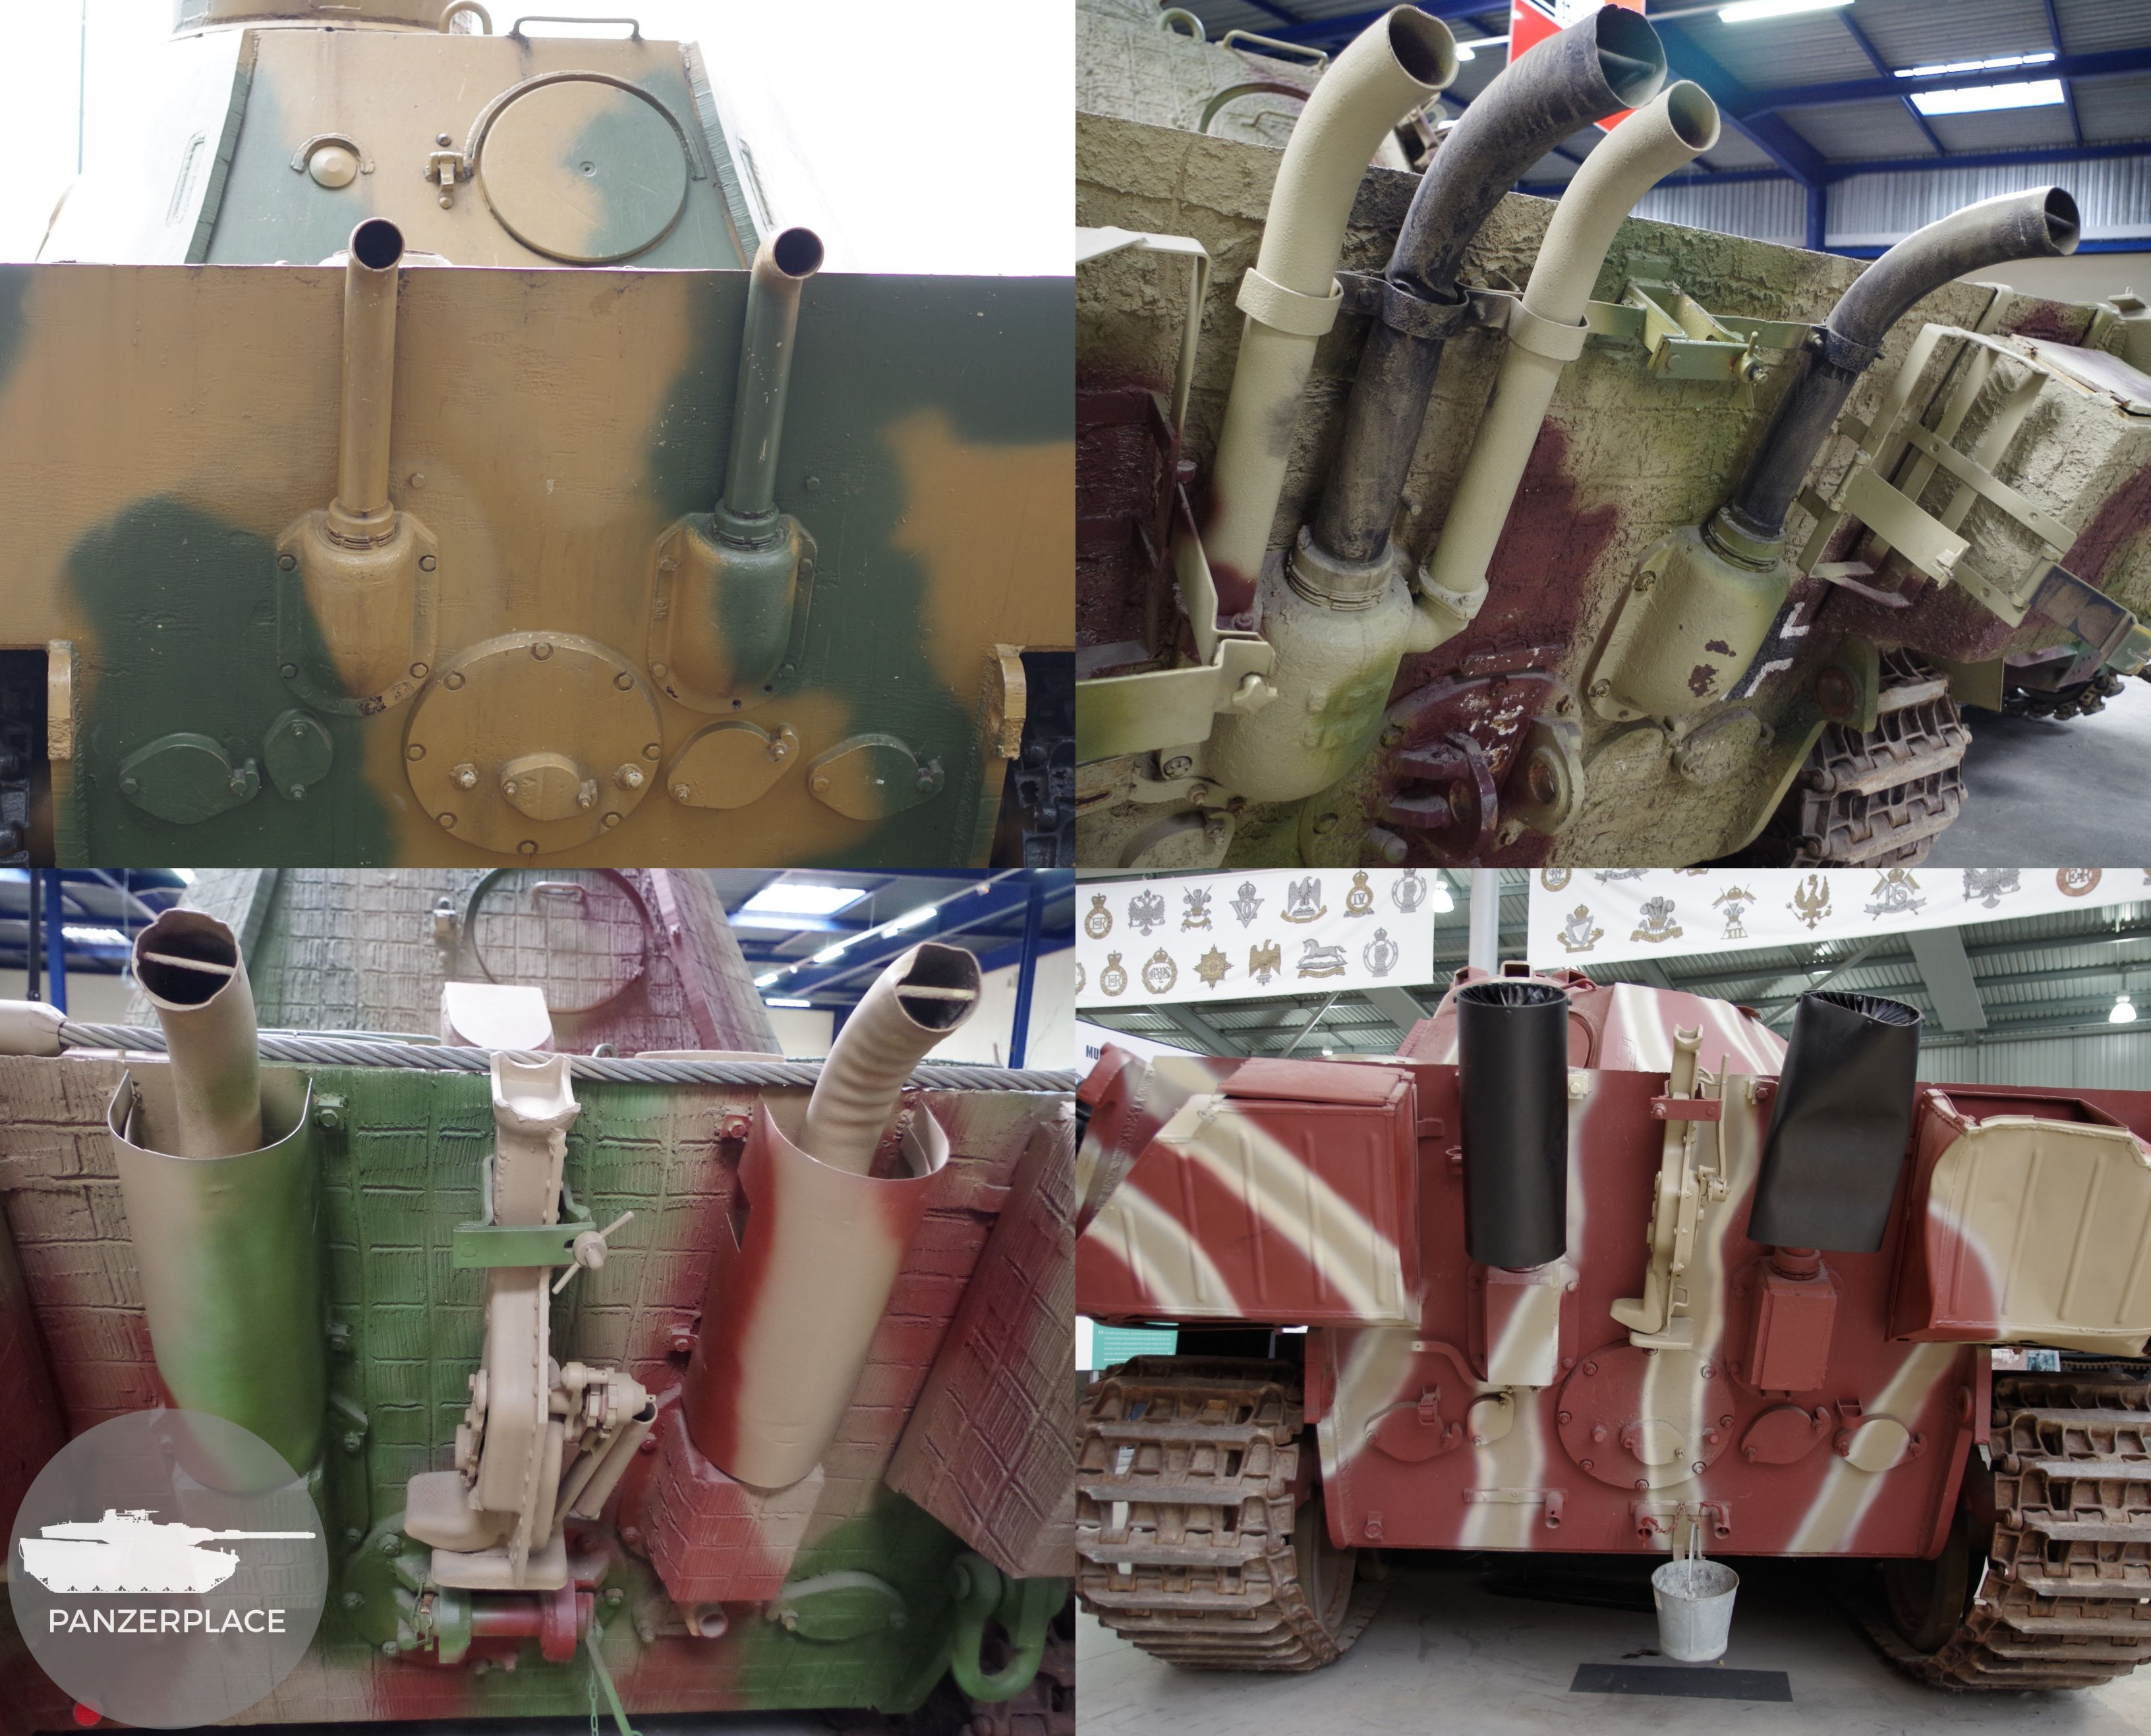 Problematic exhausts – PanzerPlace